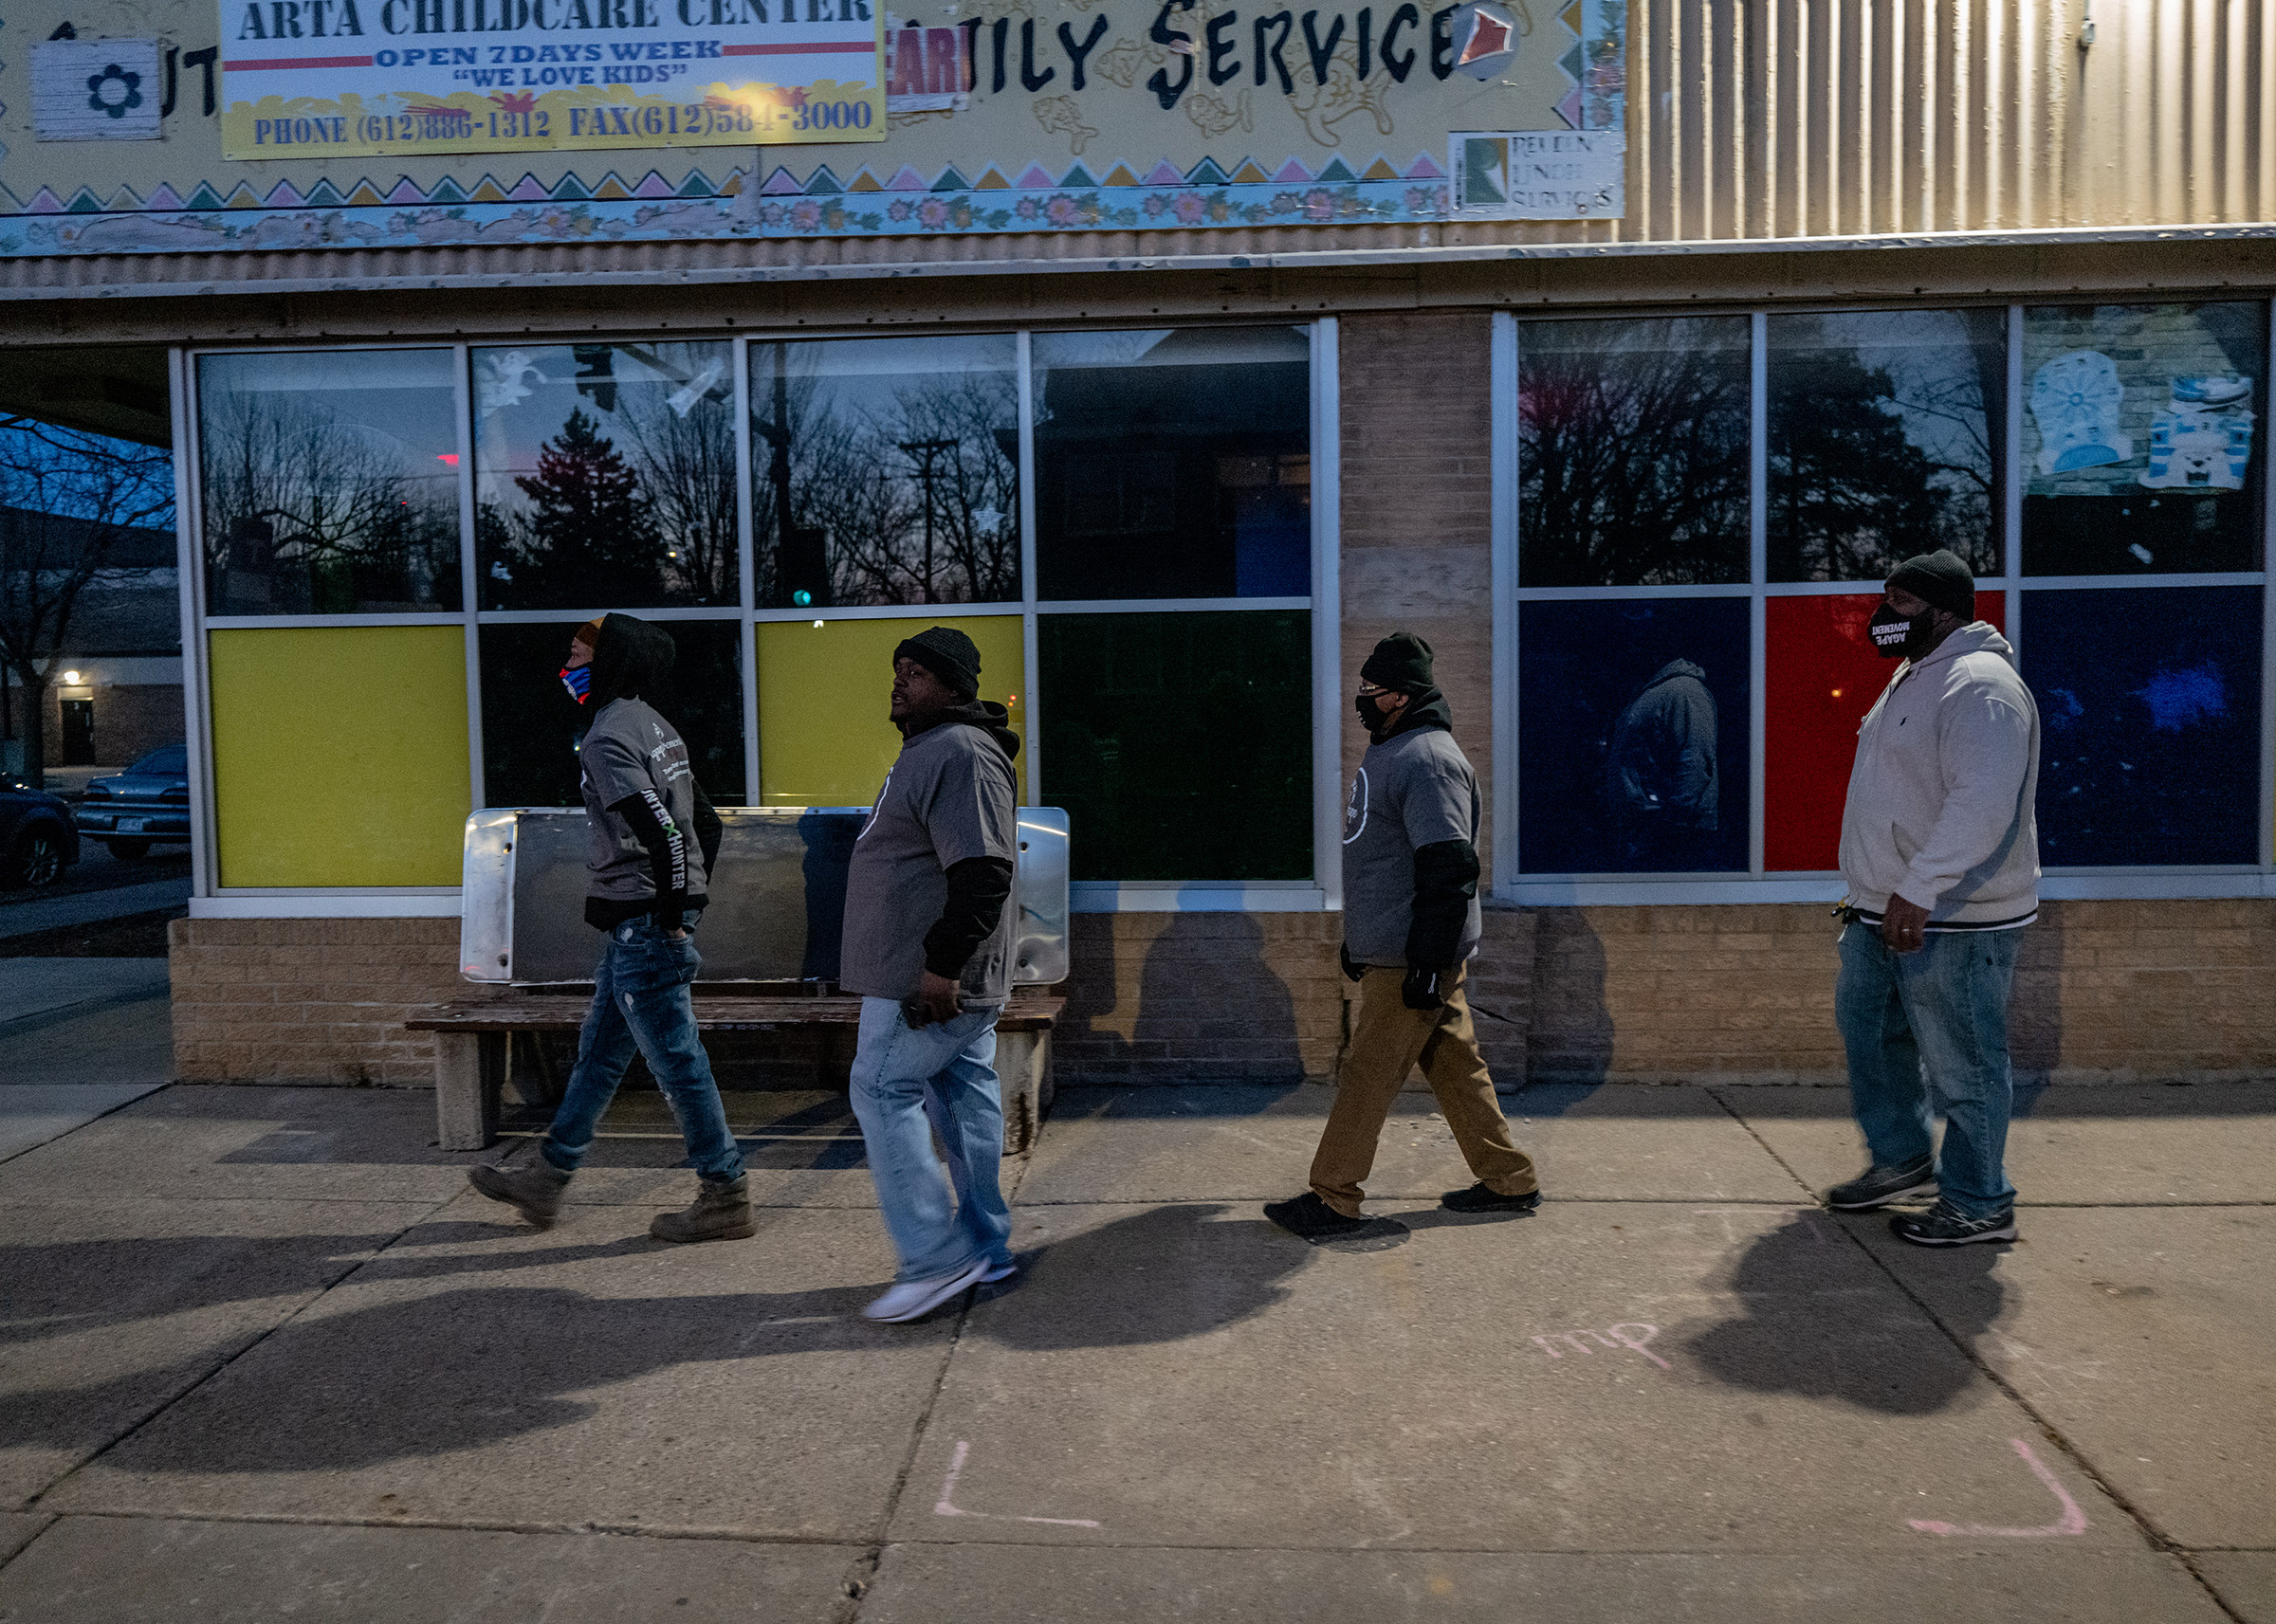 Members of Agape walk the streets to stay familiar with community members and keep abreast of issues in the community.